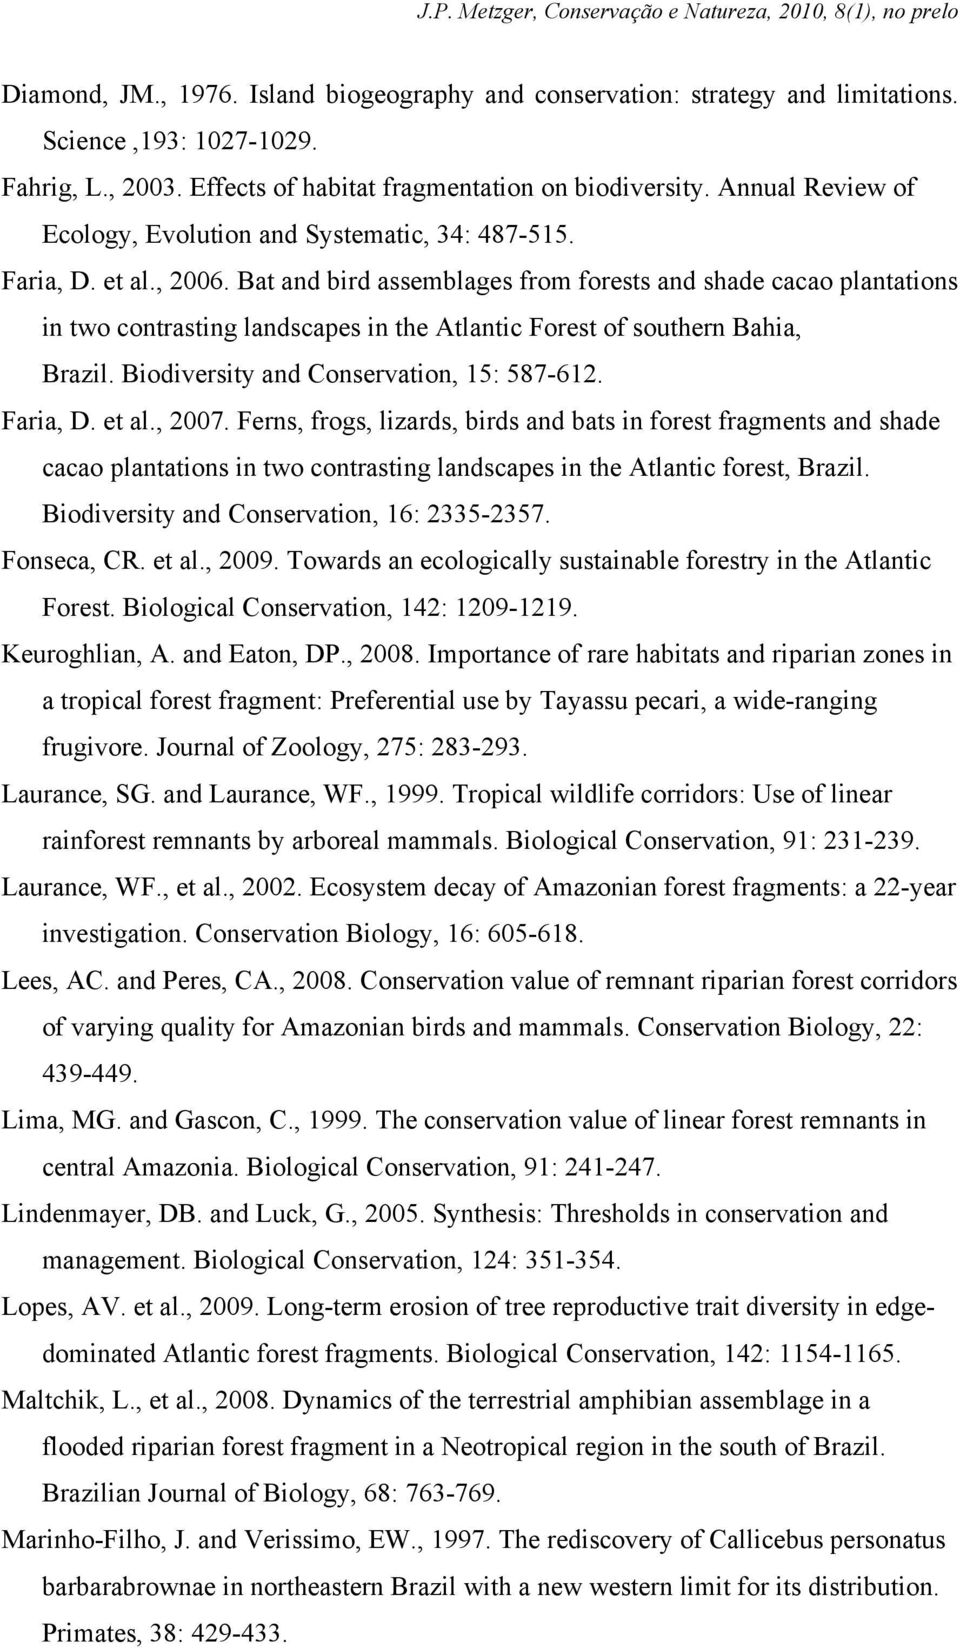 Bat and bird assemblages from forests and shade cacao plantations in two contrasting landscapes in the Atlantic Forest of southern Bahia, Brazil. Biodiversity and Conservation, 15: 587-612. Faria, D.